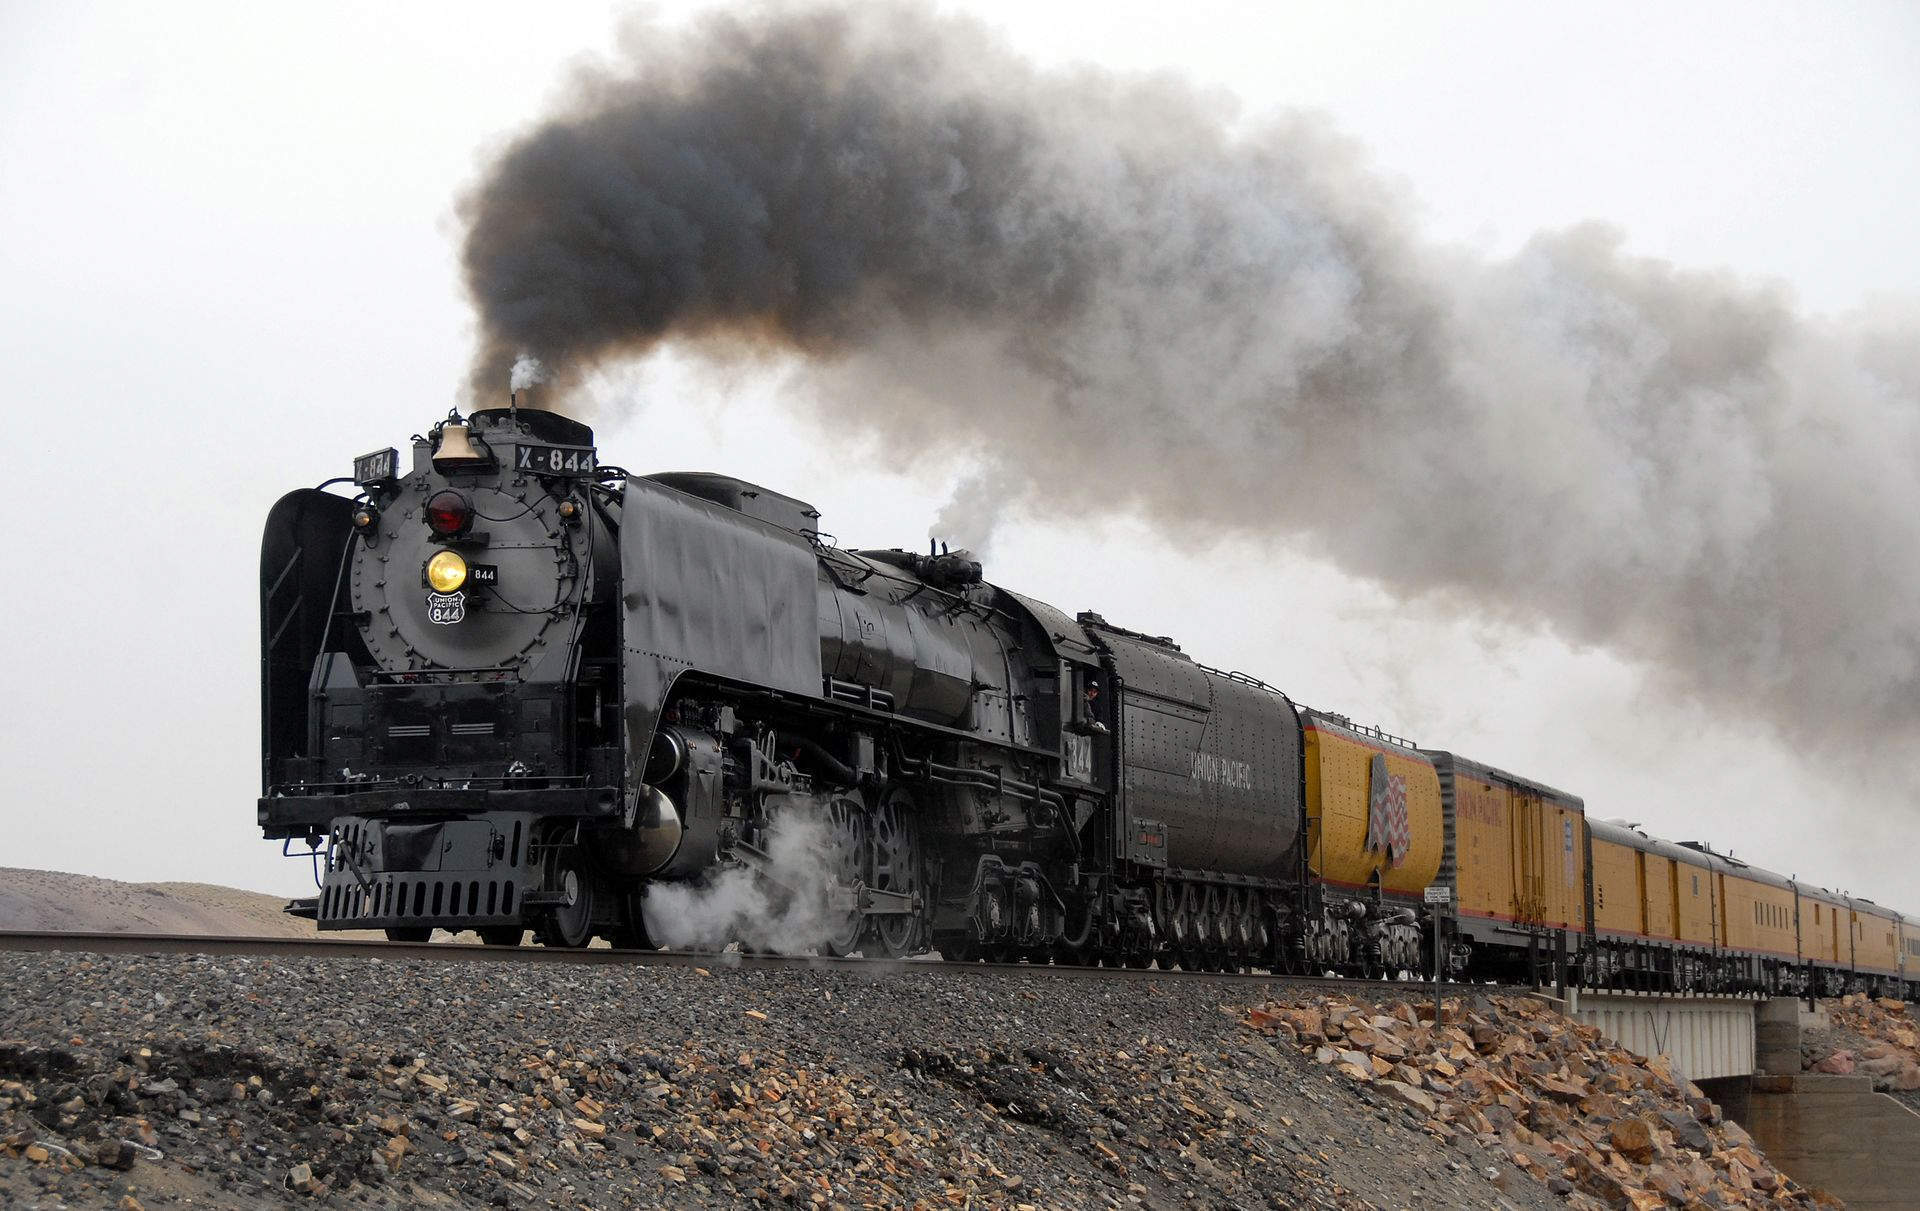 A REAL STEAM ENGINE! - Visit Southern Idaho